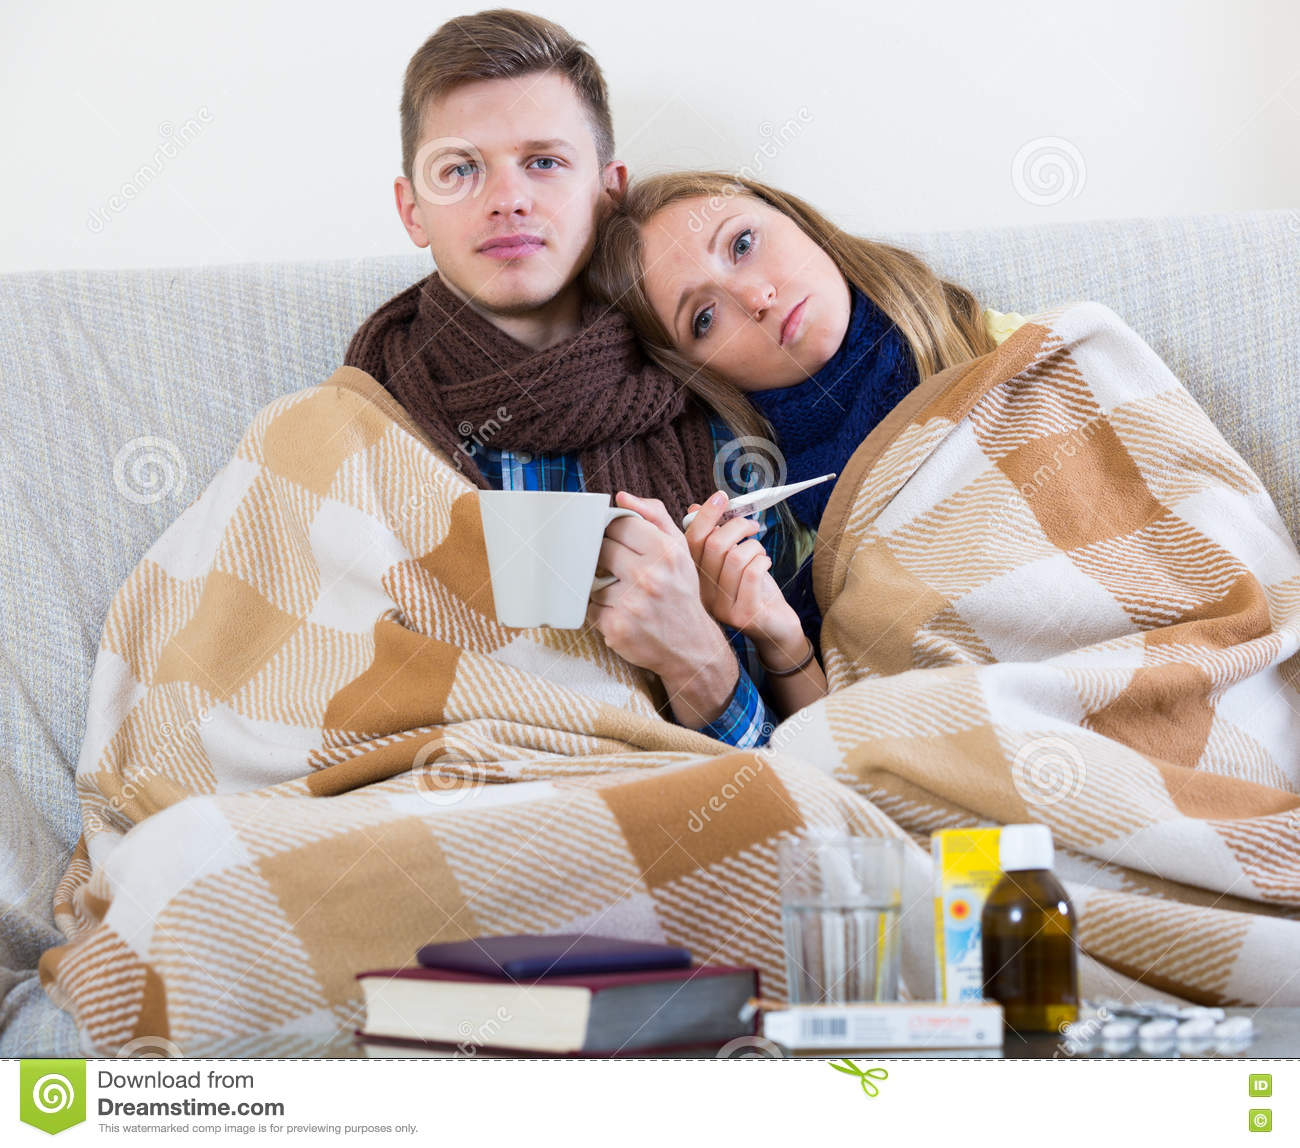 Frozen Couple Sitting On Couch Under Blanket With Thermometer Royalty Free Stock Photo